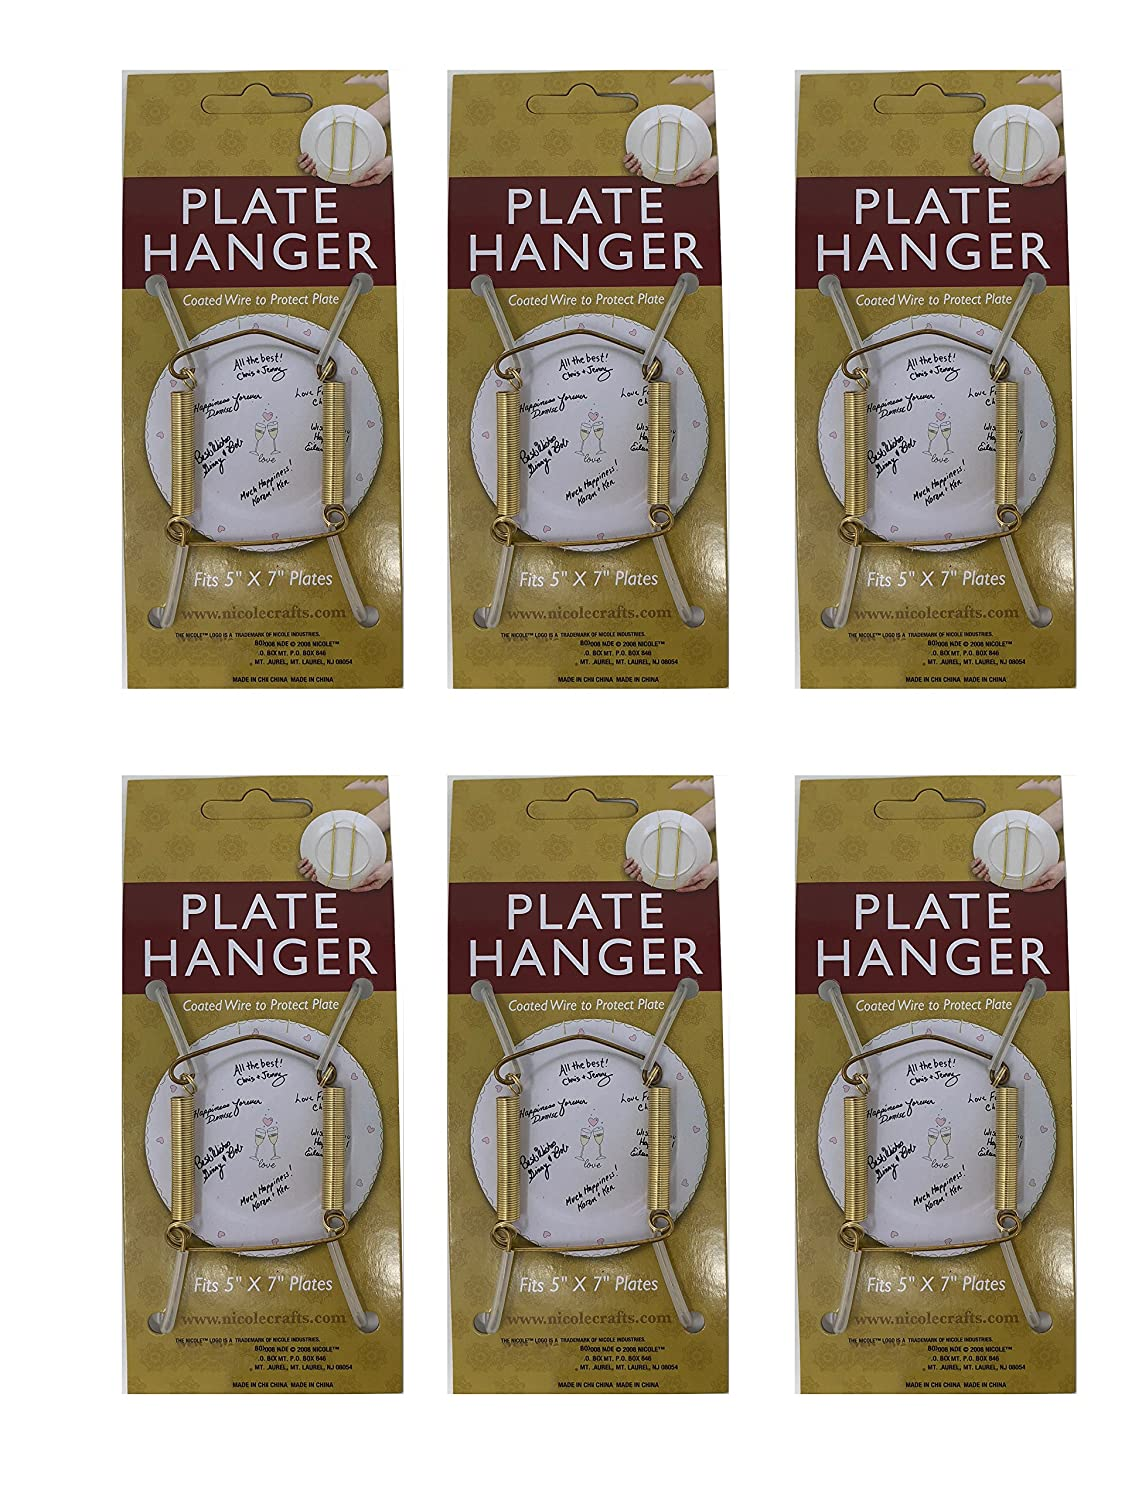 Plate Display Hanger Decorative, Expandable Spring Holds 5 to 7 Inch Plates- Gold Wire Spring Type, Pack of 6 Hangers